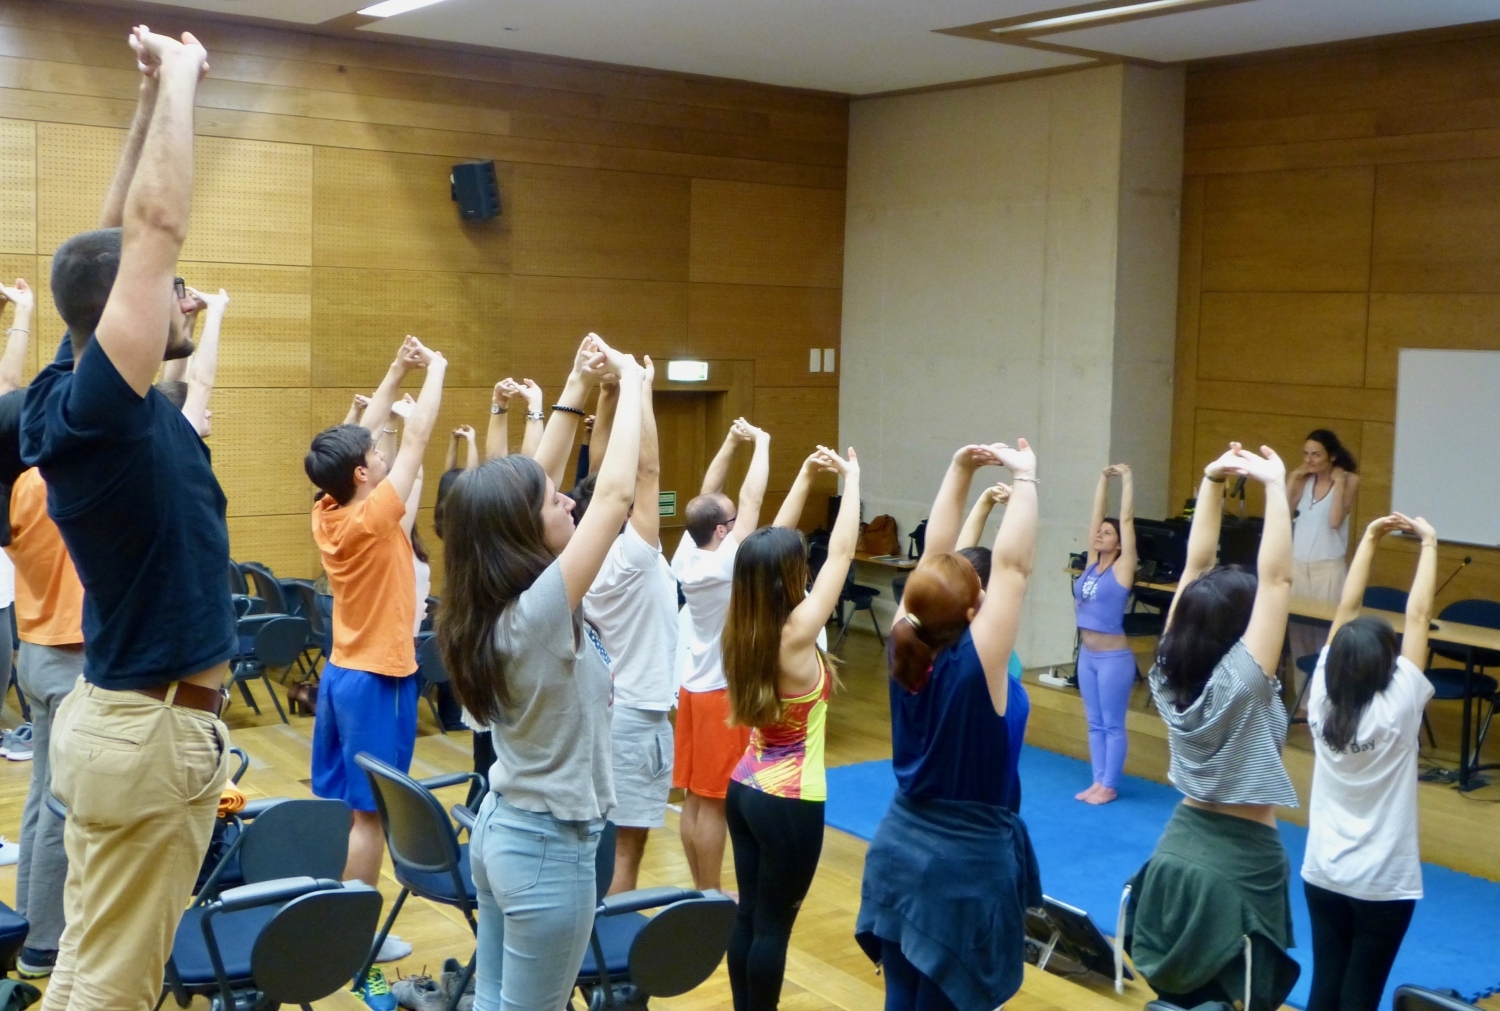 Theoretical-practical Session on the Benefits of Yoga Sámkhya at the University, ISCTE - 2017, May